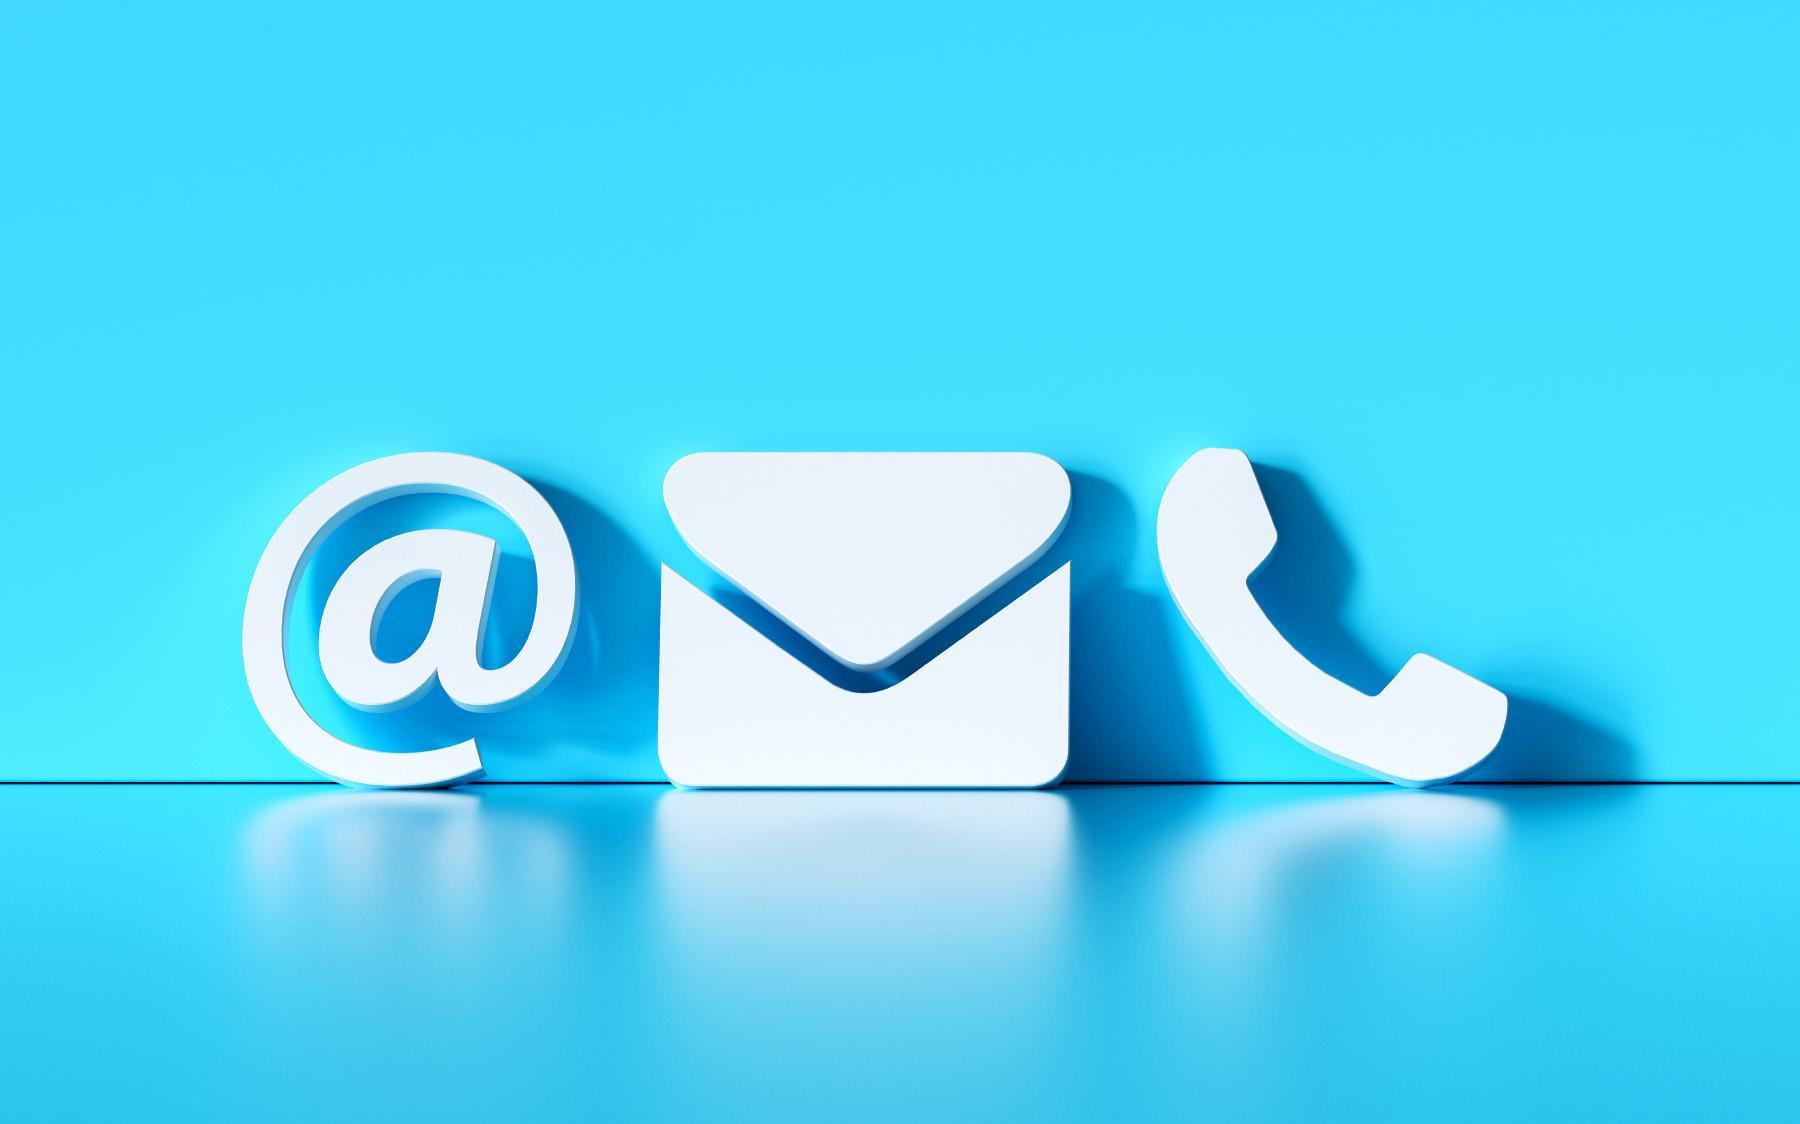 E-mail, mail, and phone icons against a blue backdrop